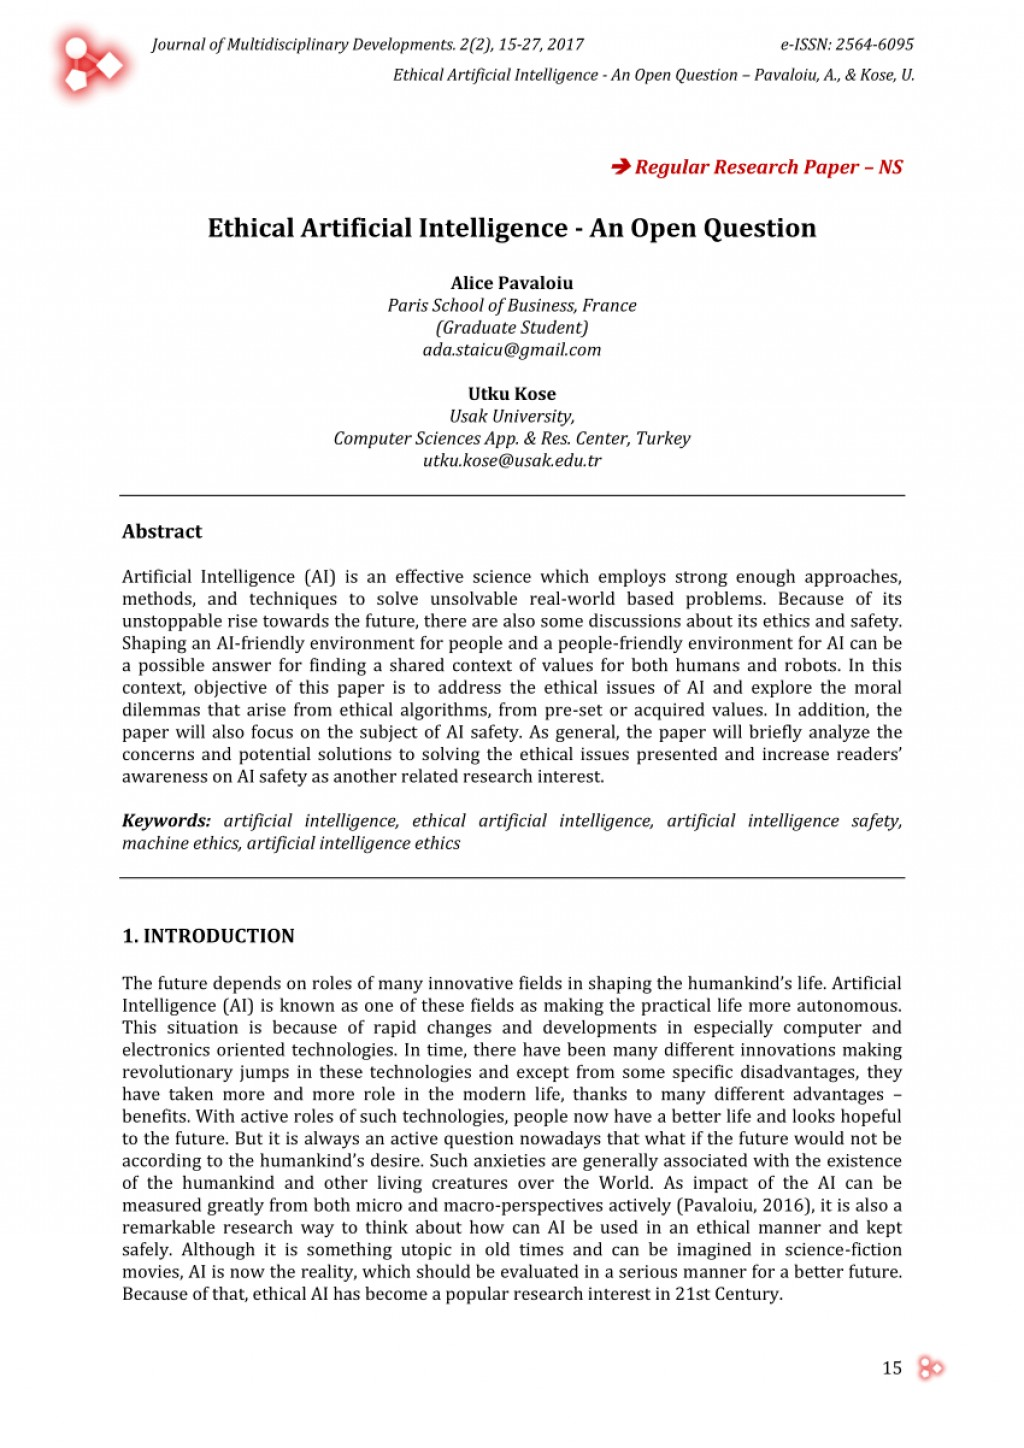 005 Research Paper Largepreview Artificial Intelligence Topics Stirring Pdf Large